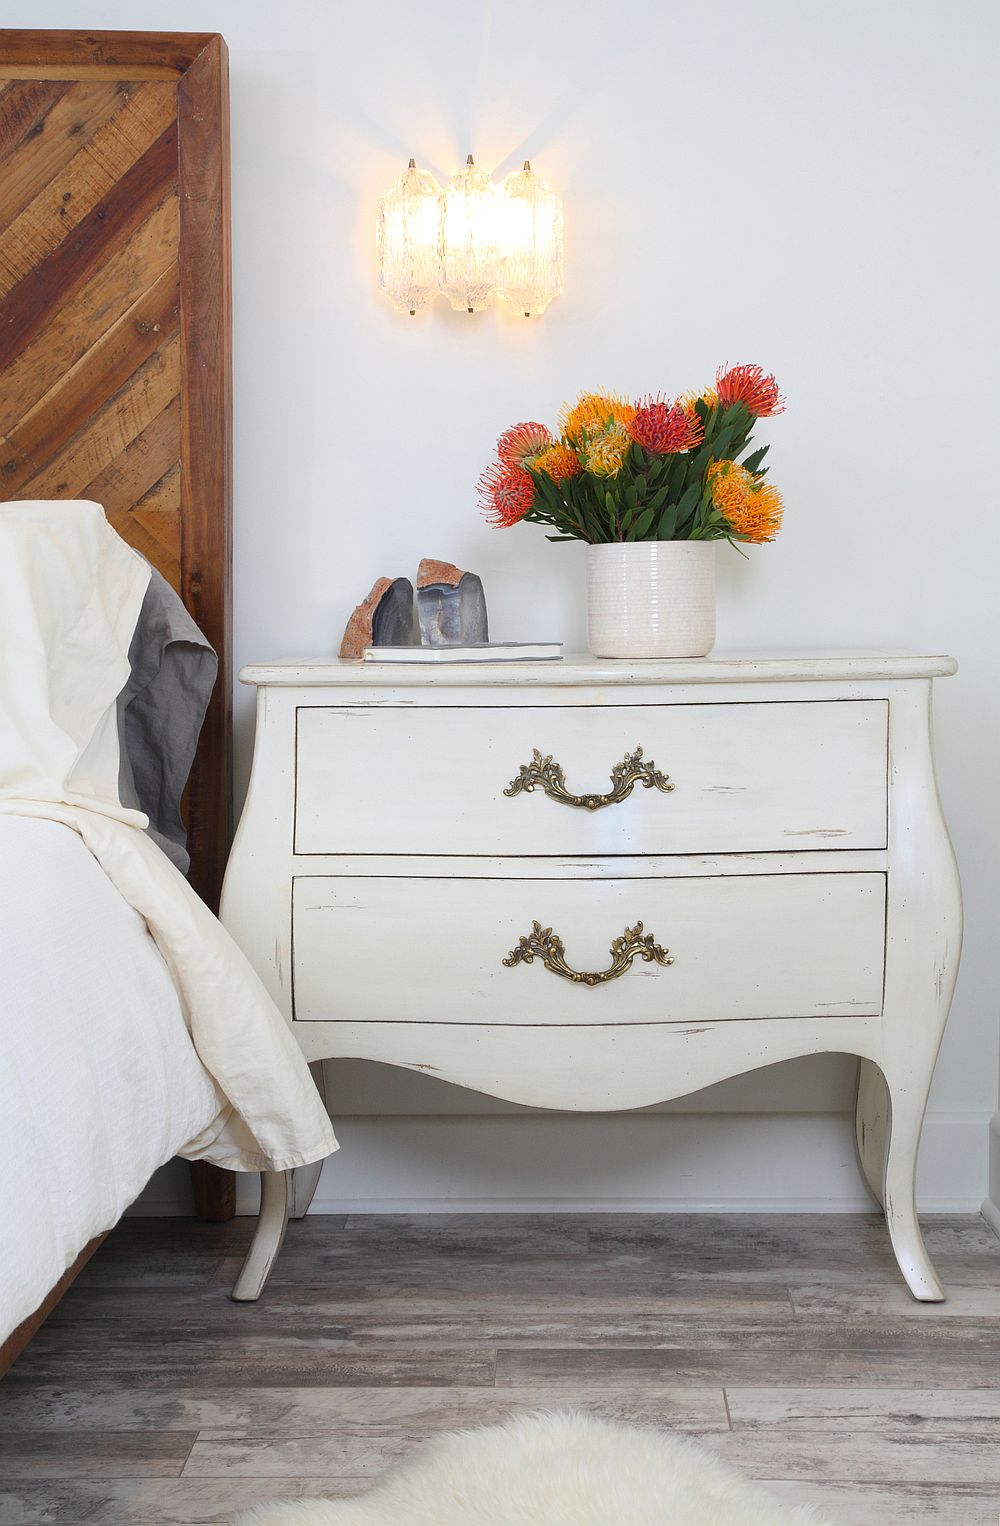 Bedside tables in white with a midcentury modern style and fabulous sconce lighting